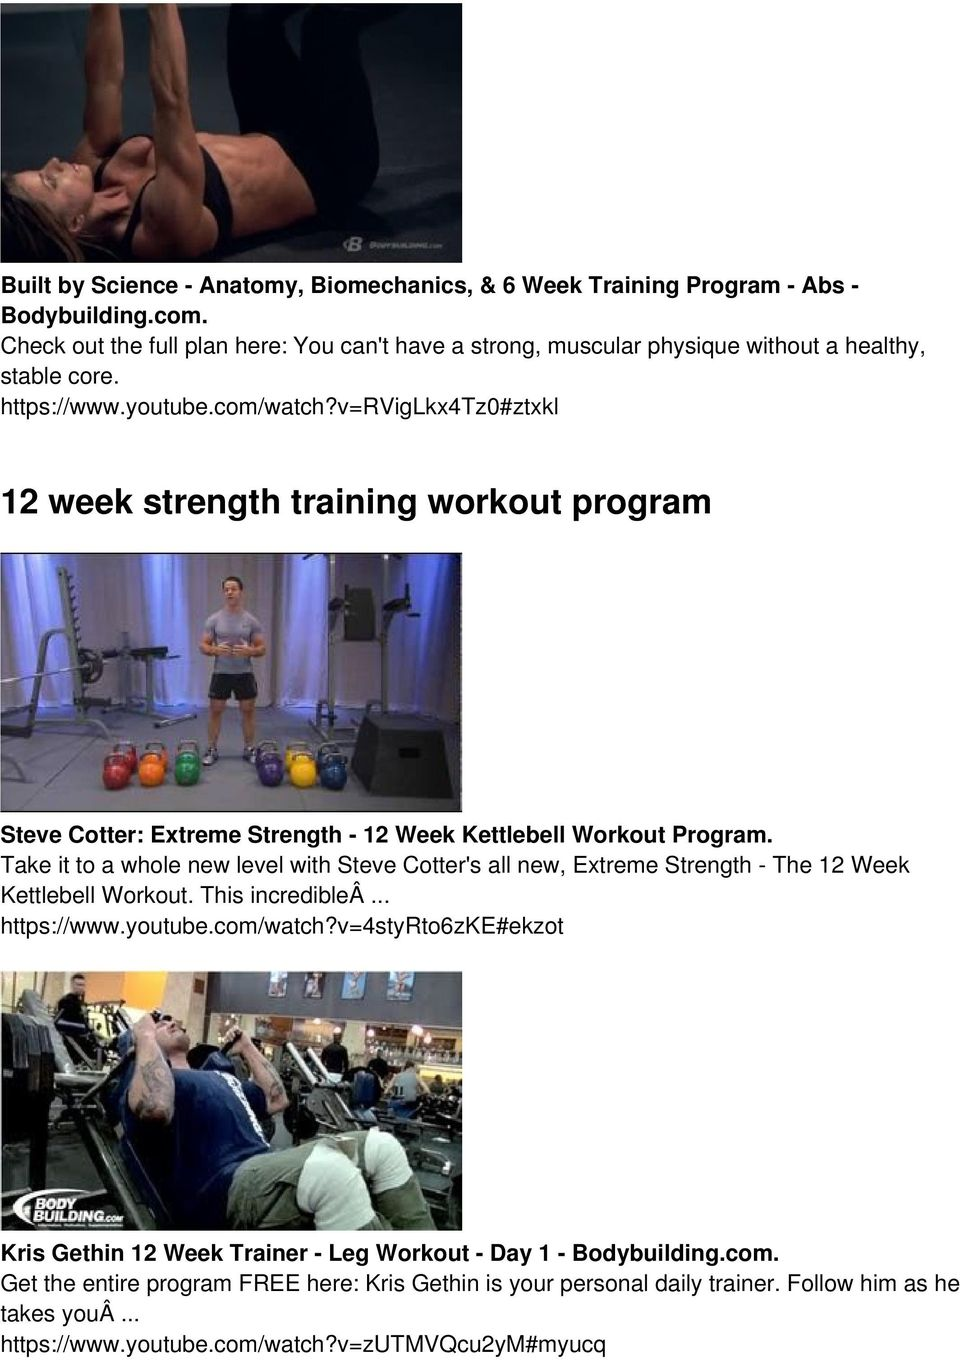 Full Version Is Here Pdf 10 Minute Cardio Workout Strength Circuit With Step Ups Builtlean Vrviglkx4tz0ztxkl 12 Week Training Program Steve Cotter Extreme